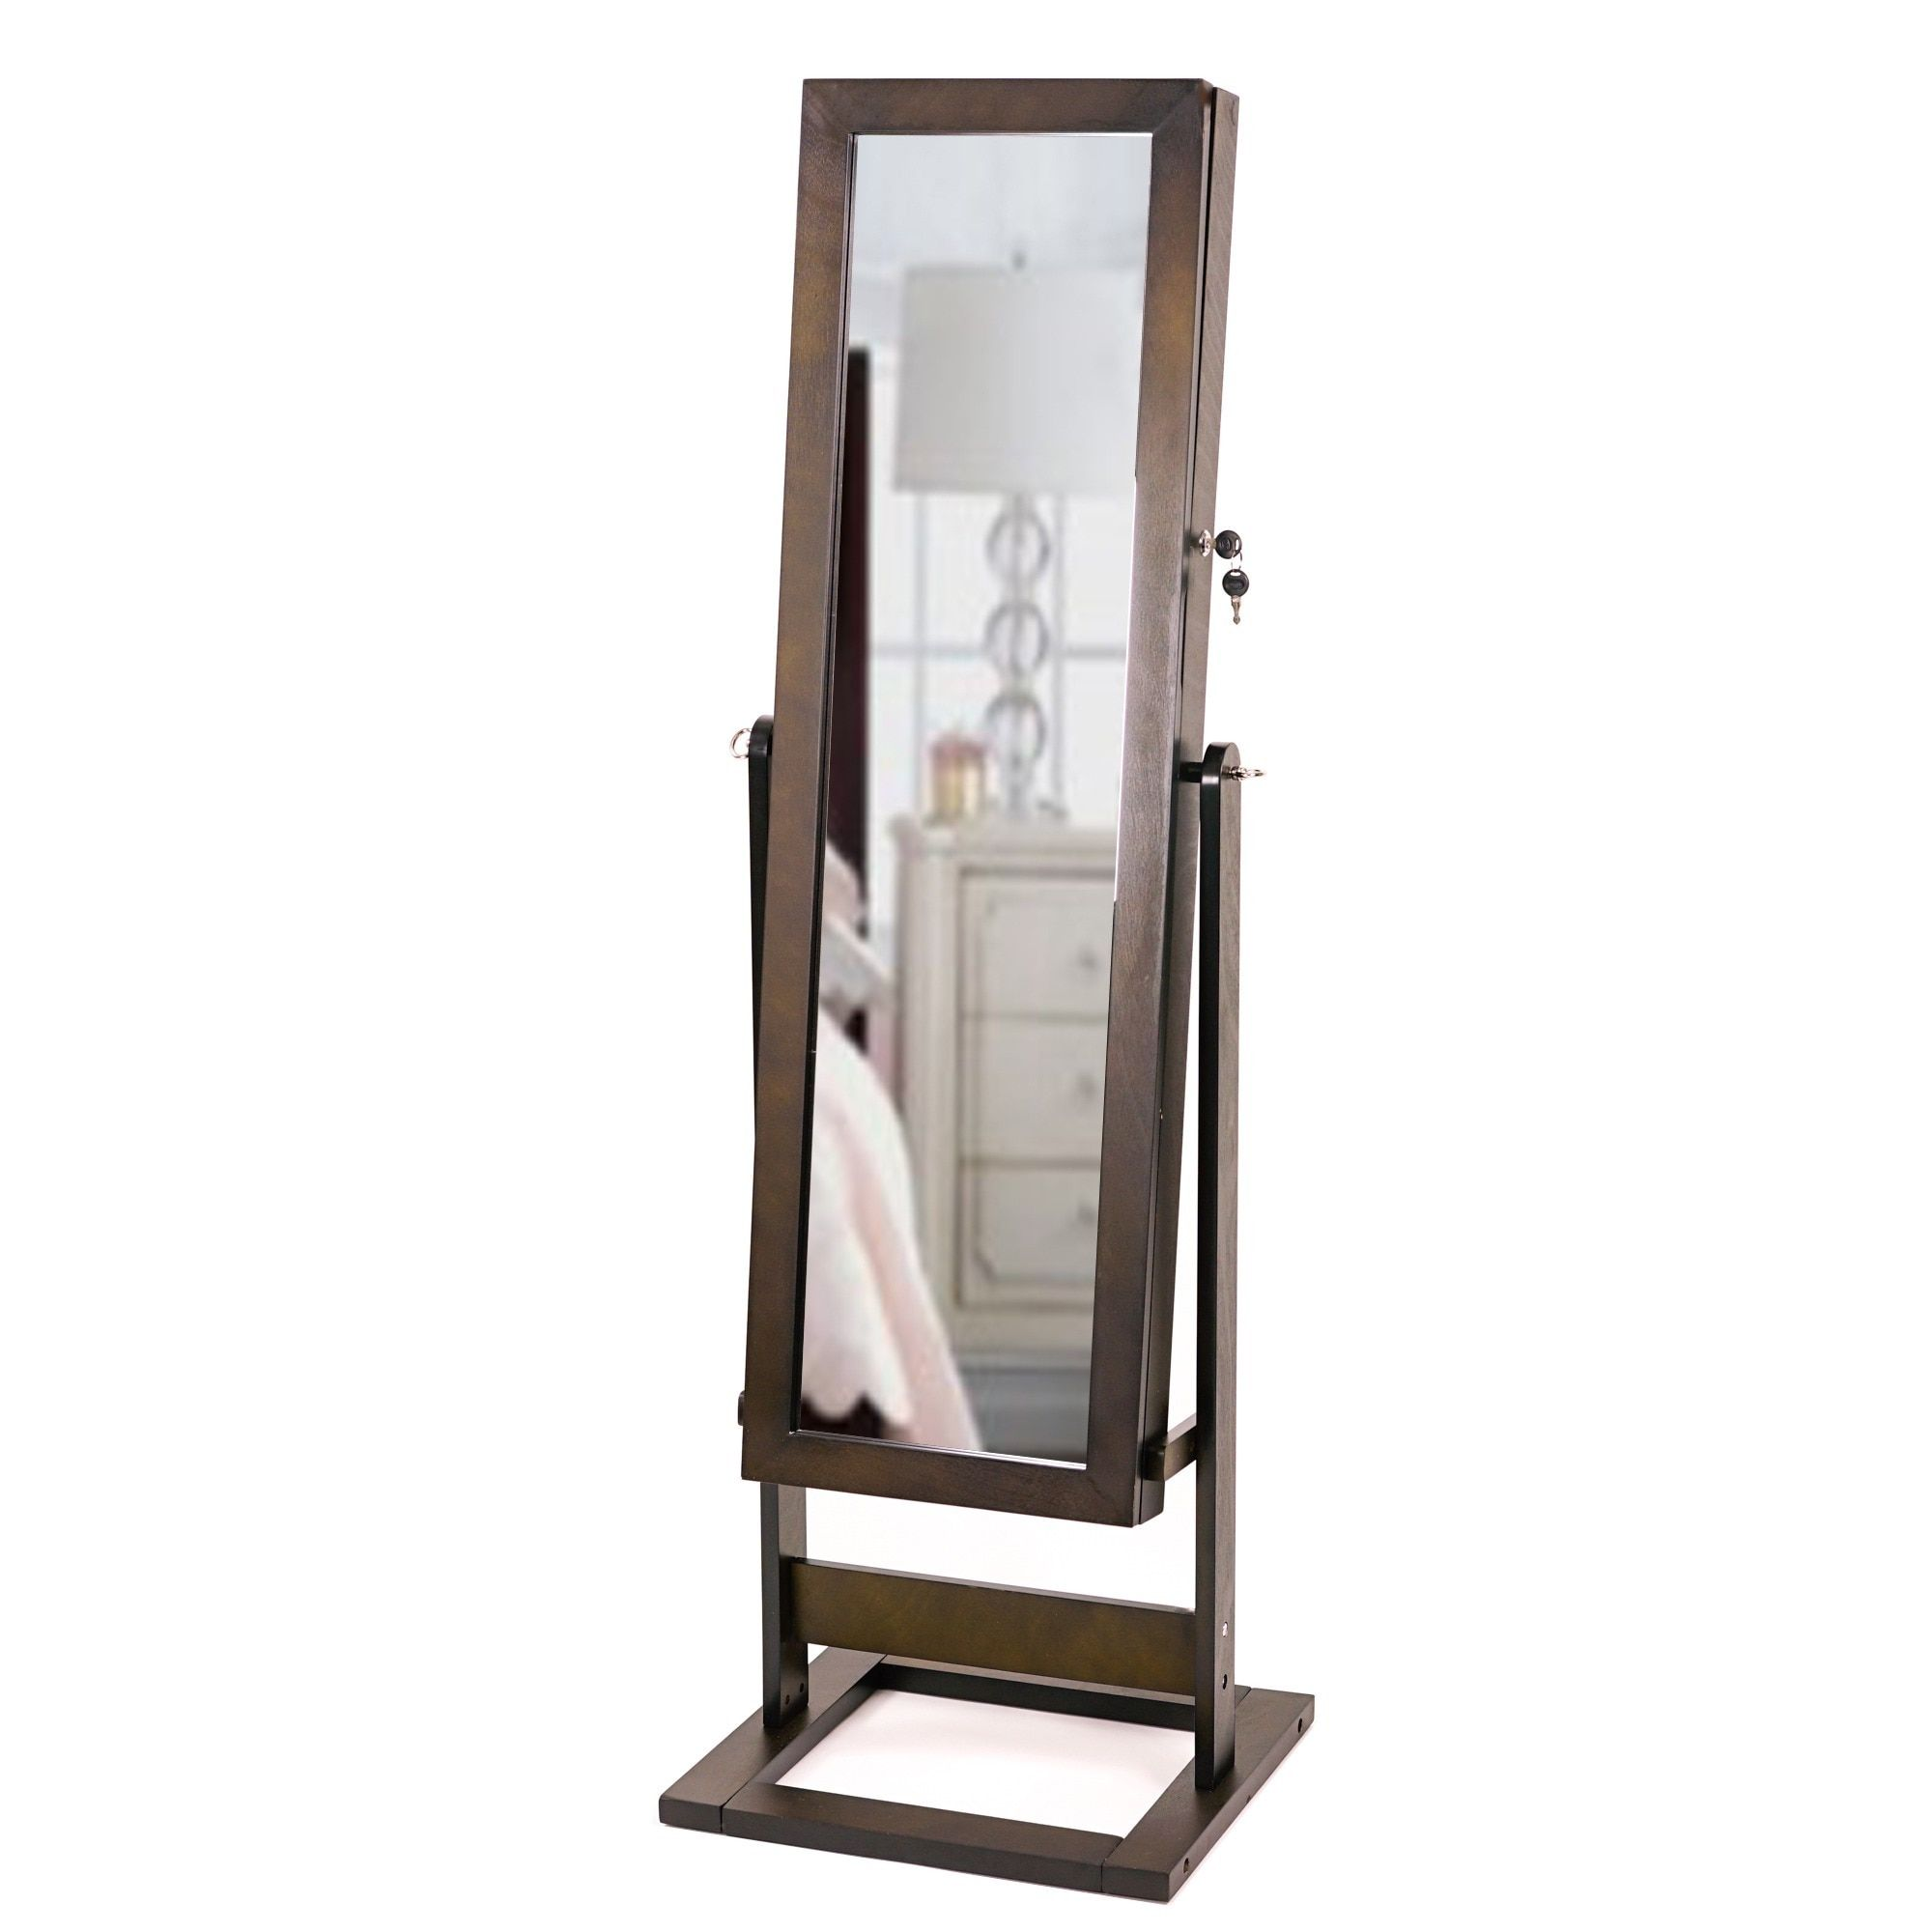 (60,150),Display Box,Jewelry Armoire,Jewelry Box,Jewelry Cabinet,Jewelry Case,Jewelry Chest,Jewelry Organizer Set,Jewelry Valet,Necklace Holder,Storage Mirror Jewelry Boxes: Free Shipping on orders over $45 at Overstock.com - Your Online Jewelry Store! Get 5% in rewards with Club O!